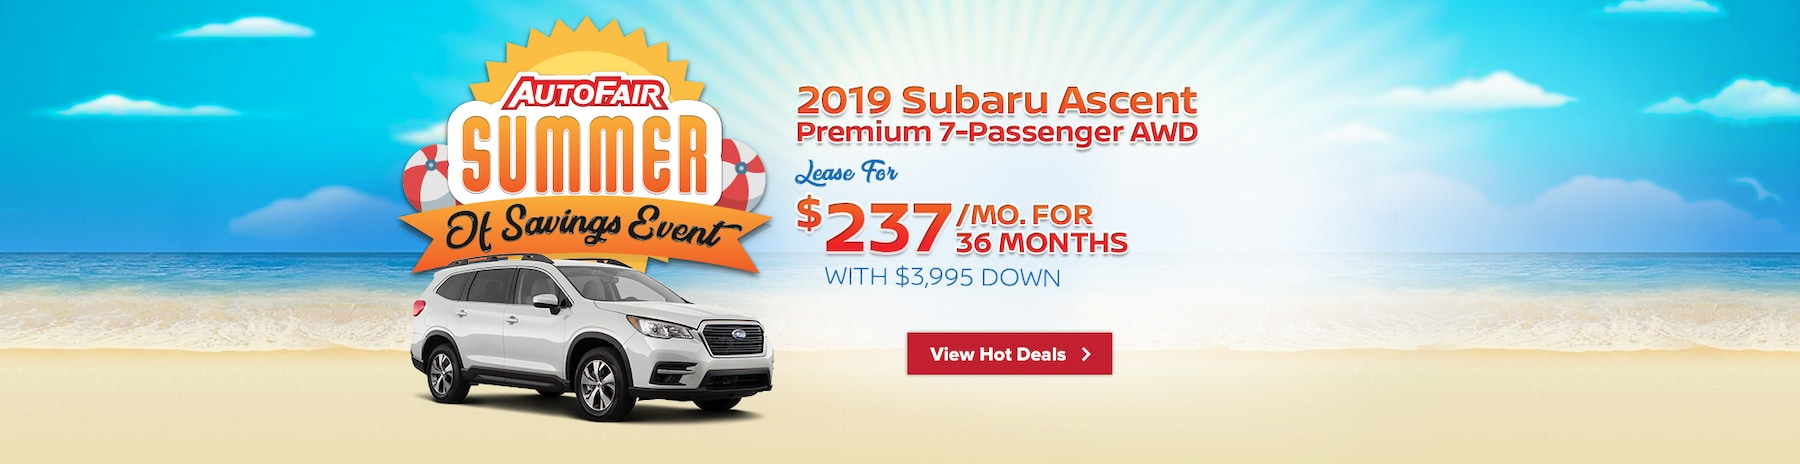 Subaru Dealer Haverhill MA | AutoFair Subaru of Haverhill MA